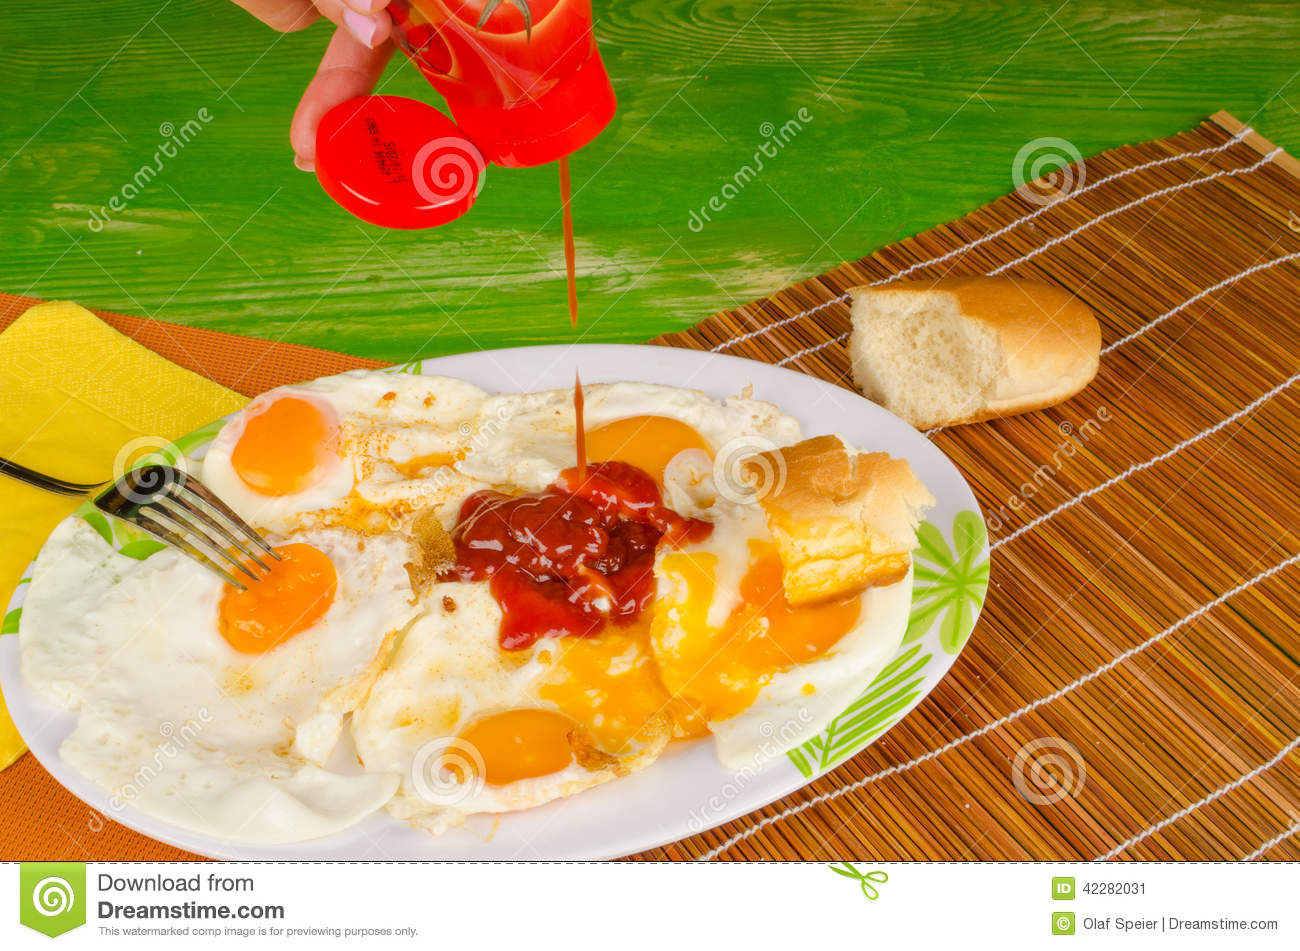 Ketchup On Eggs , Fast Food Stock Photo - Image: 42282031